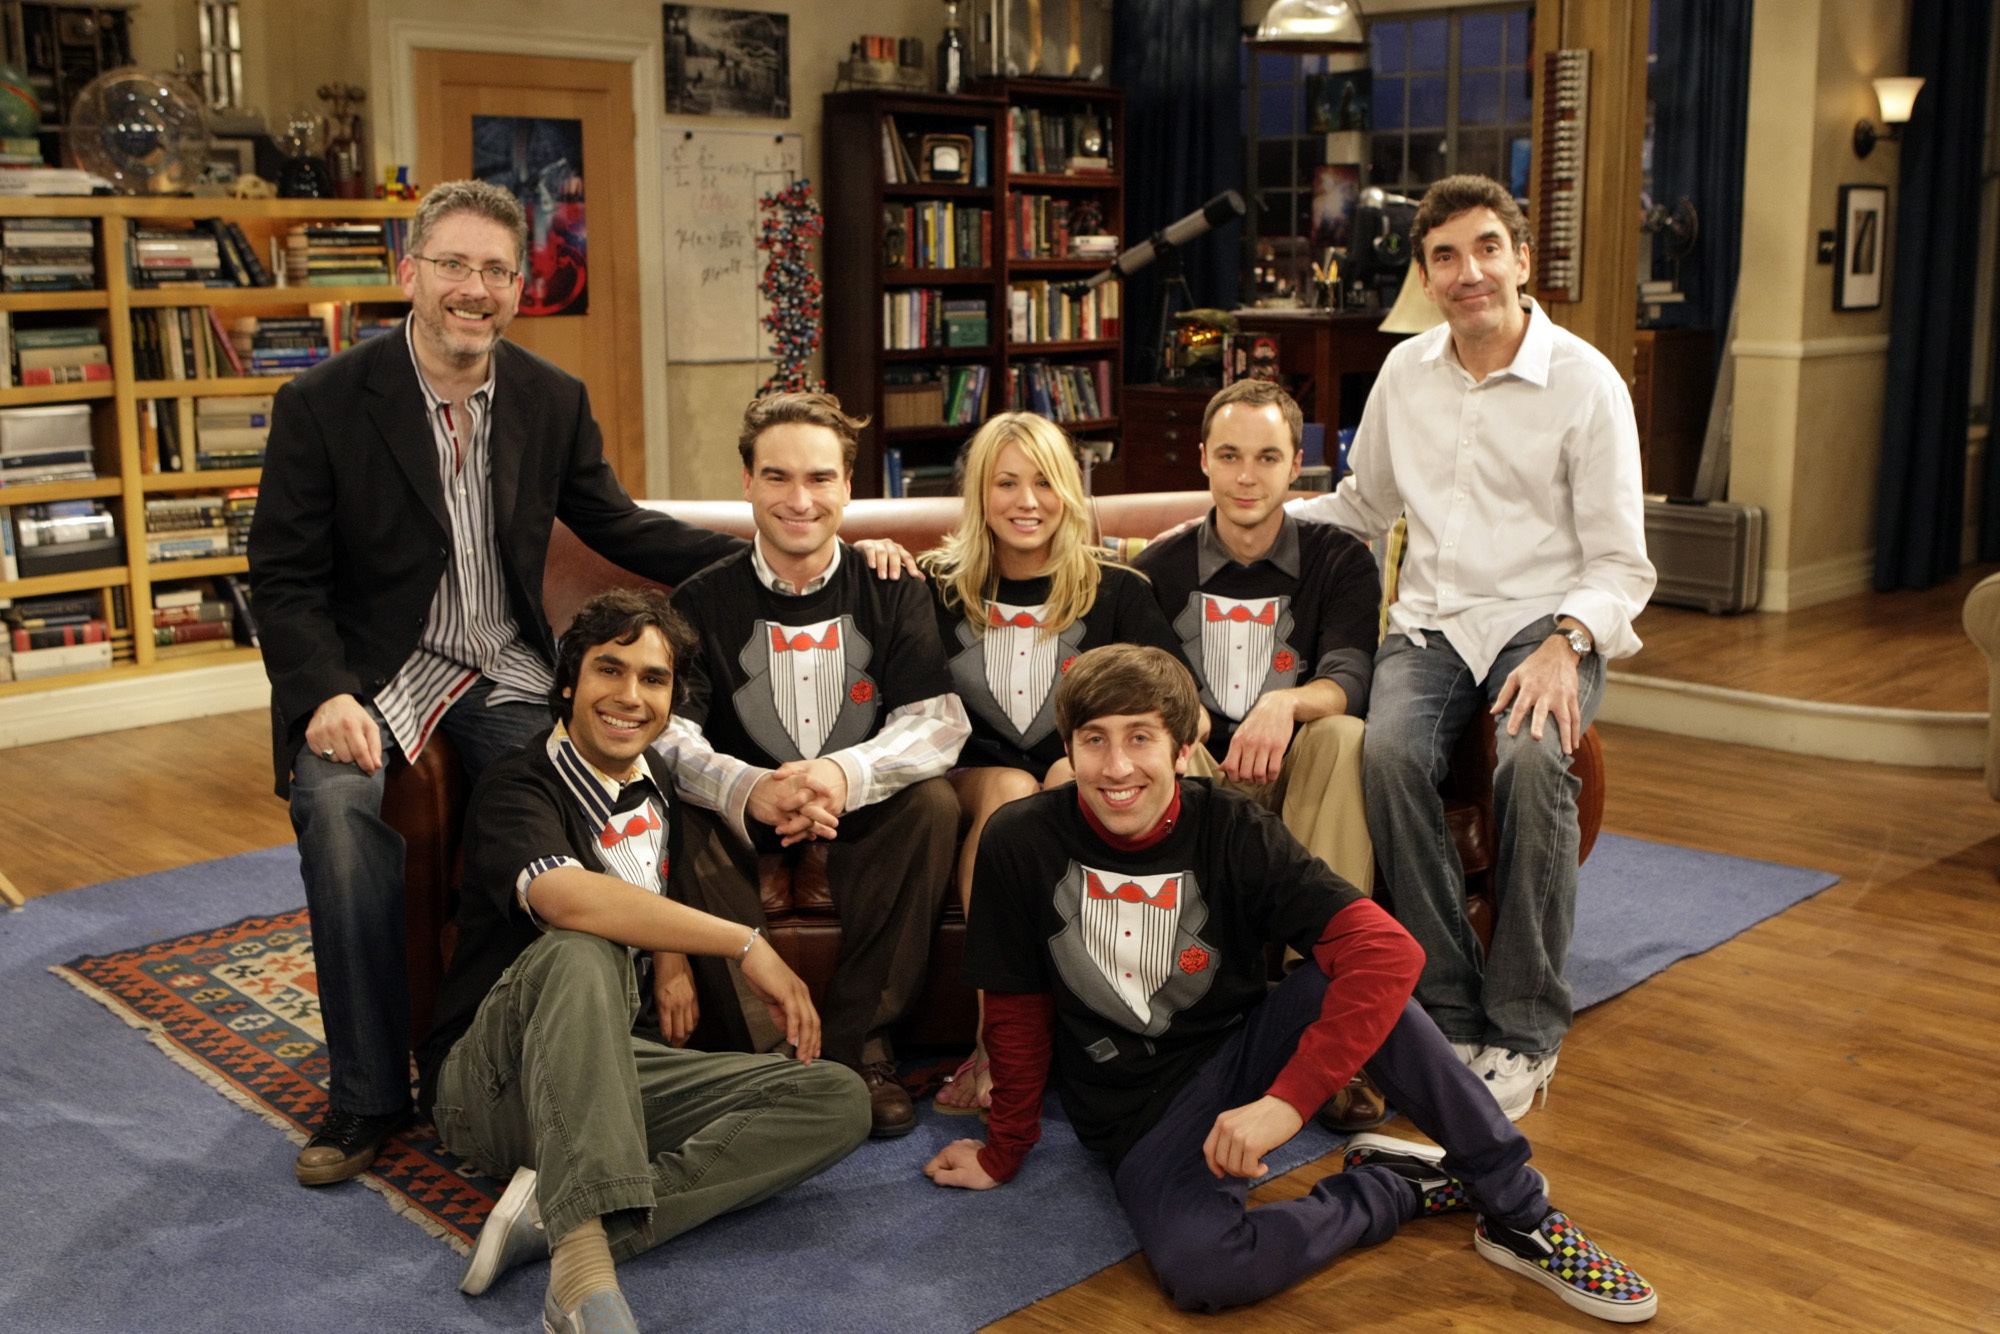 The Big Bagn Theory Tbbt Cast The Big Bang Theory Photo 15234931 Fanpop